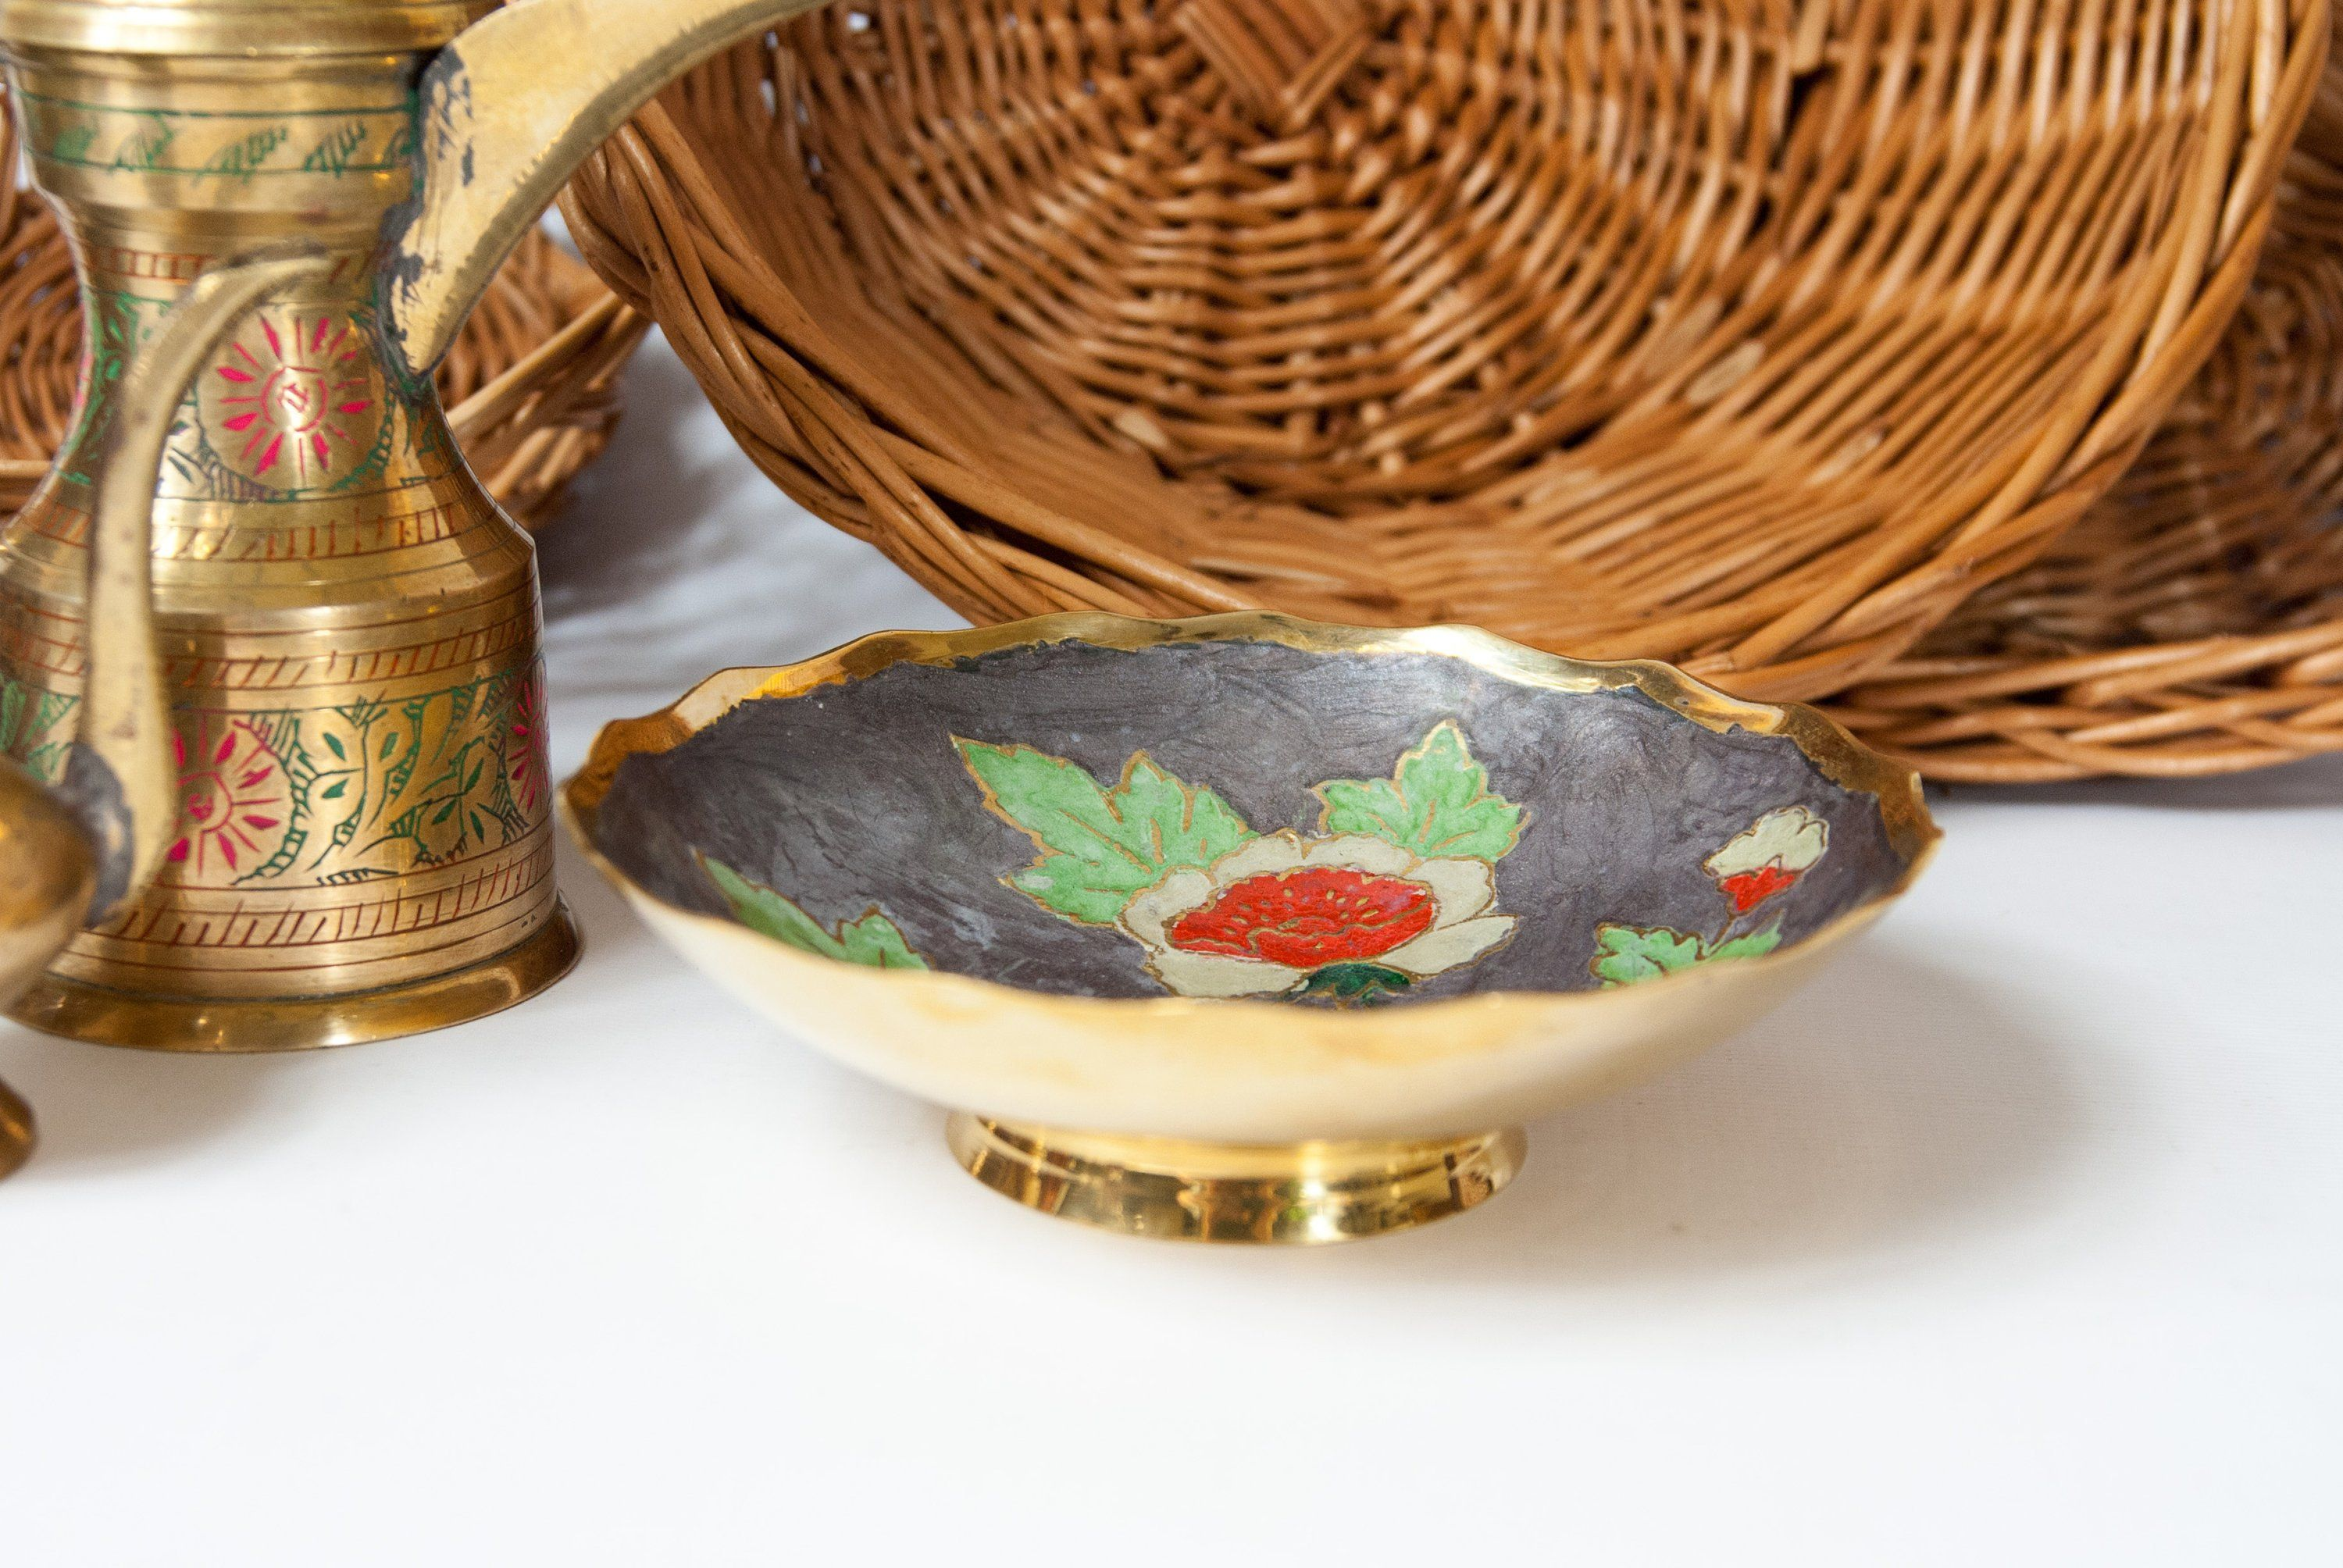 India Br Bowl Decorative For Keys Small Fruit Golden Footed Ring Holder Dish Plate Hand Painted By